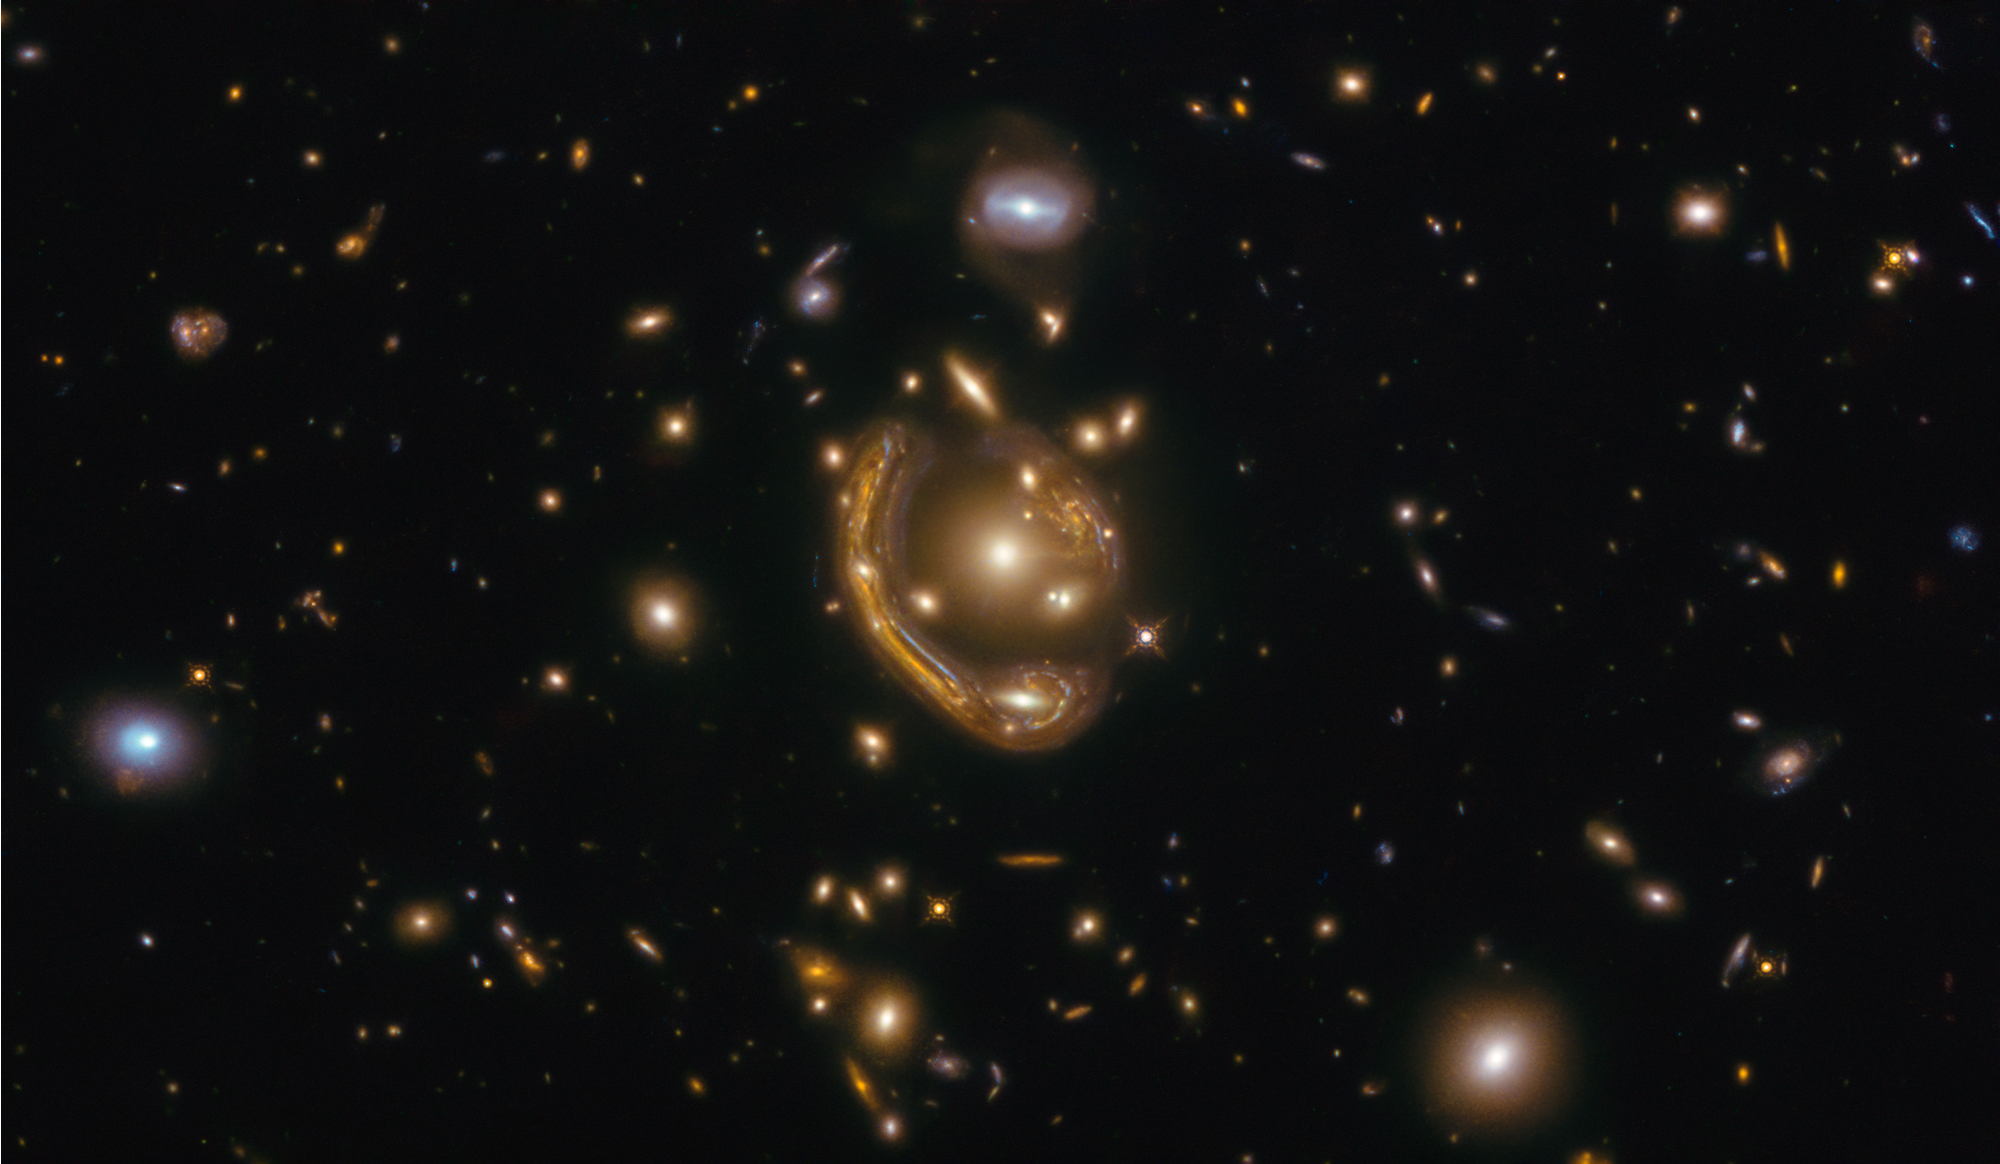 Hubble Snapshot of Molten Ring Galaxy Prompts New Research